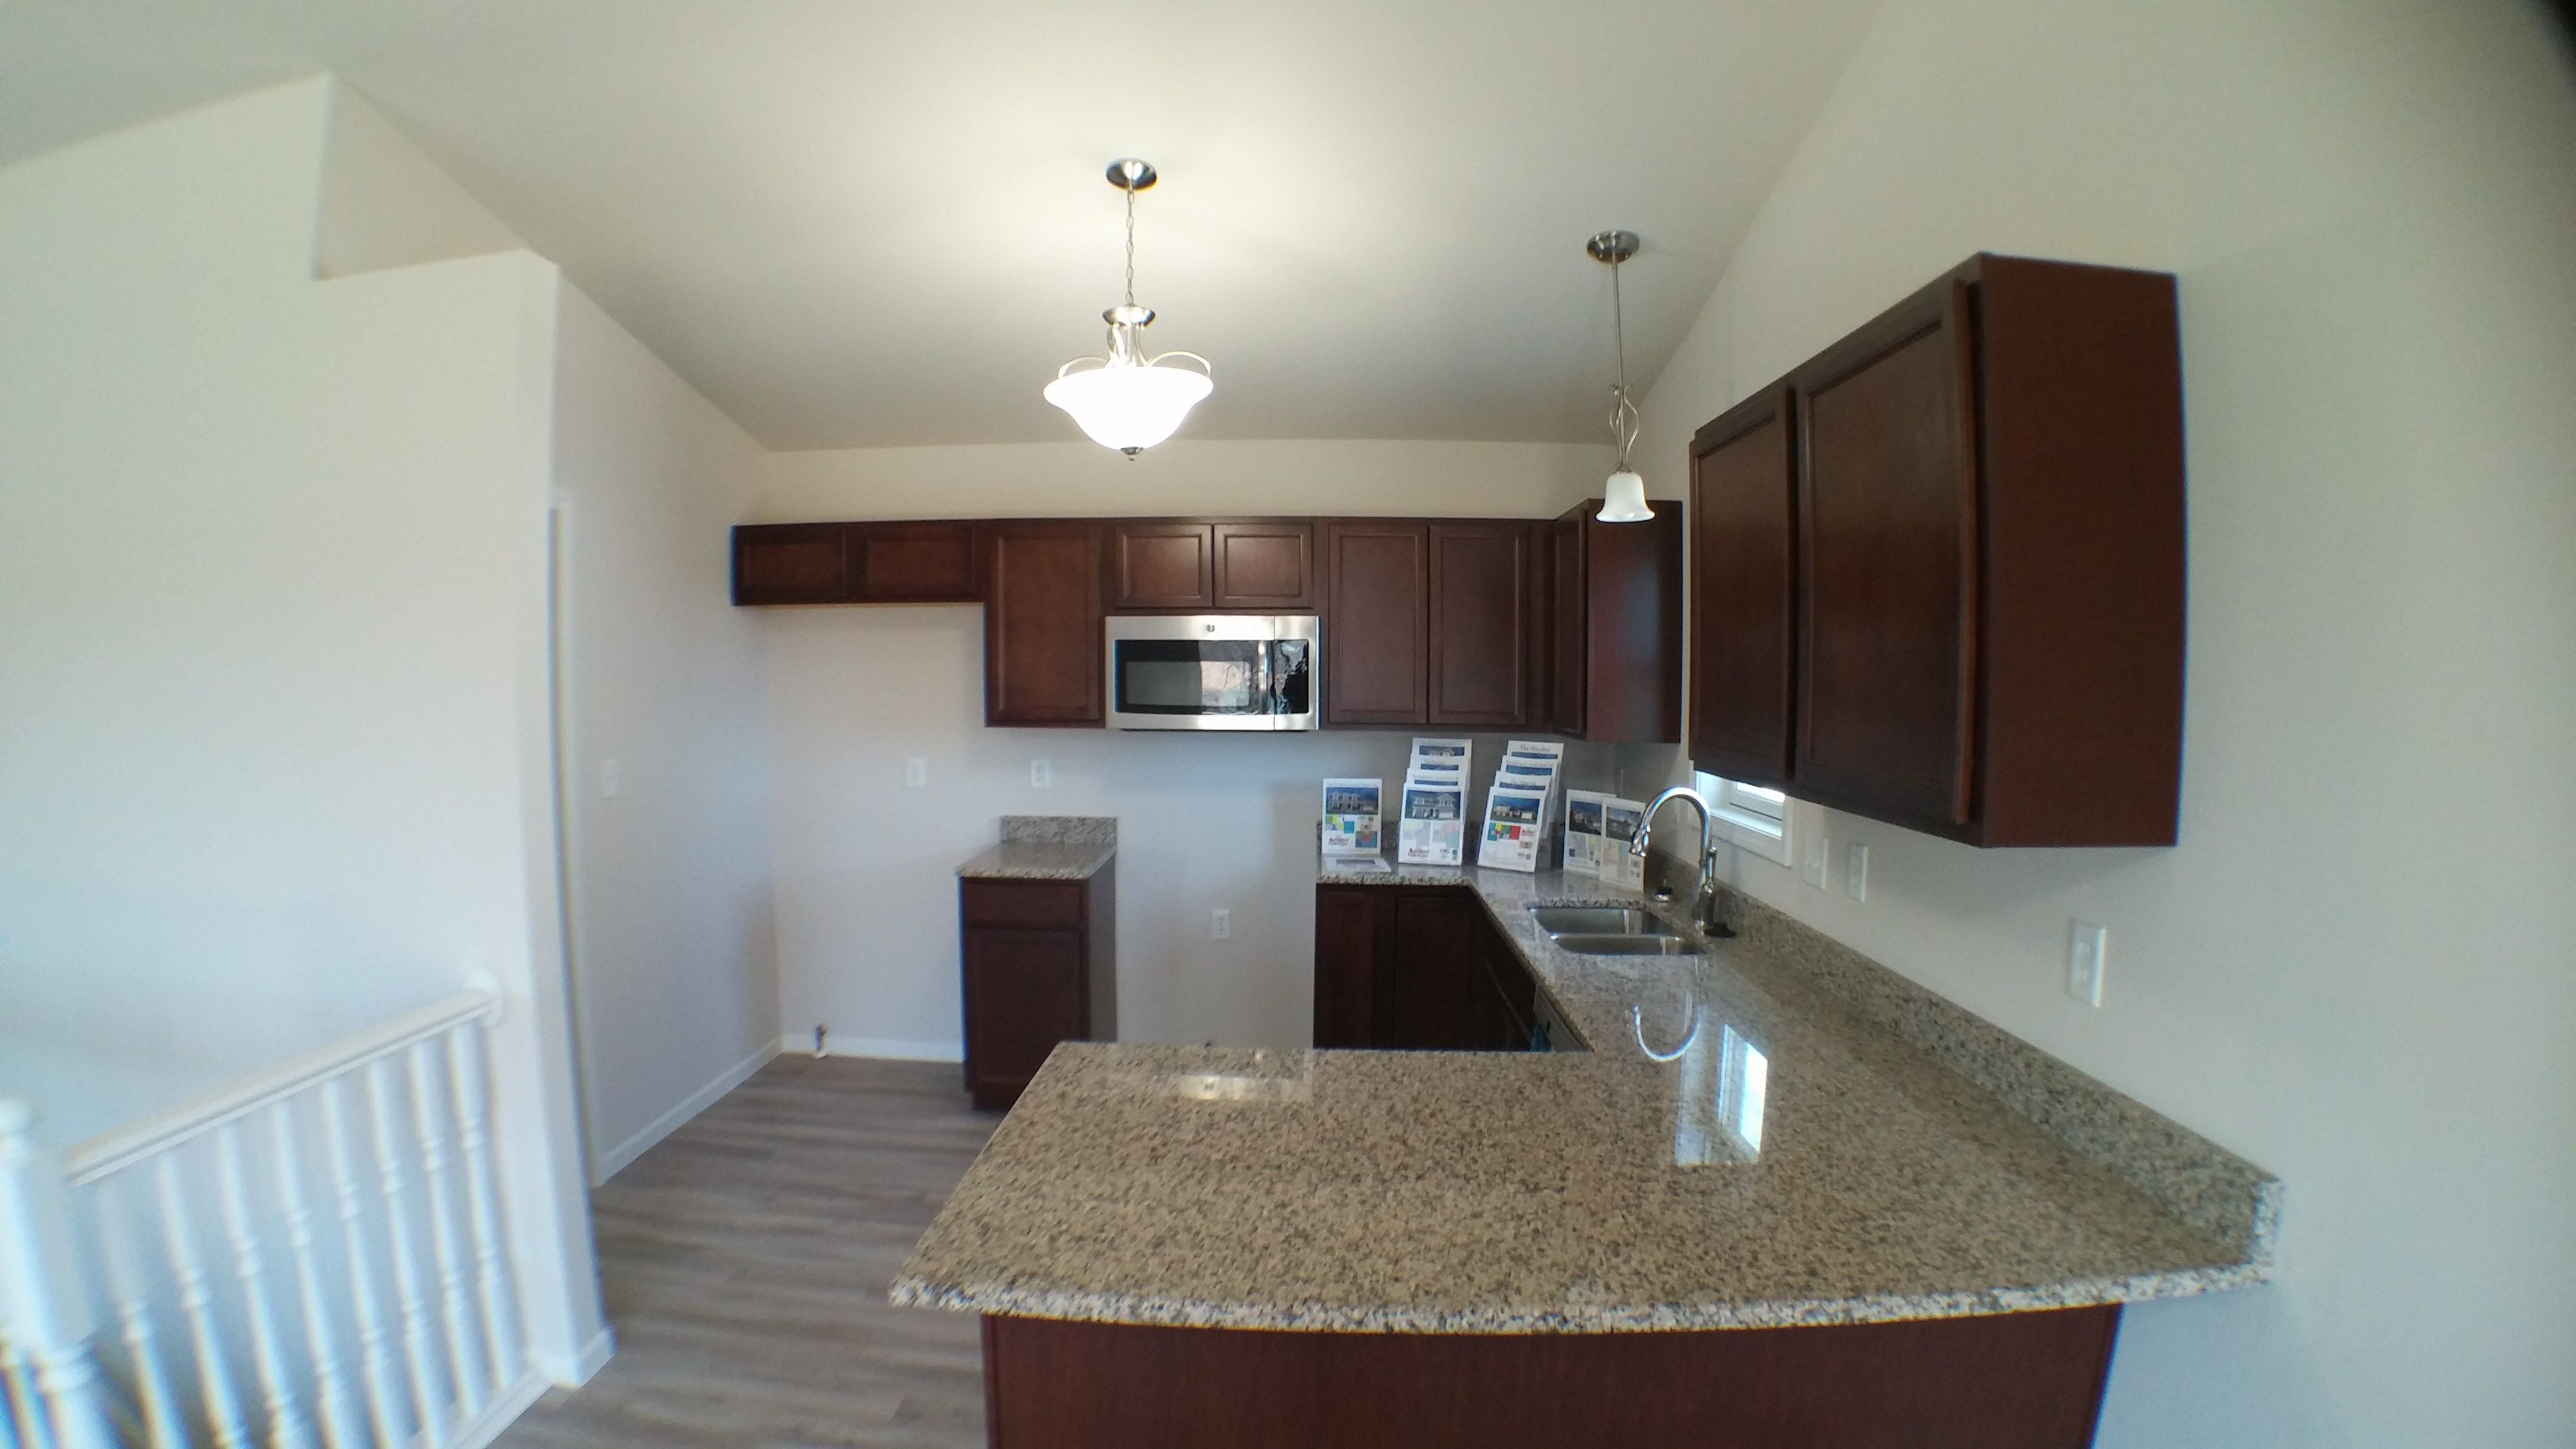 Kitchen featured in the Lexington II By Accent Homes Inc. in Gary, IN